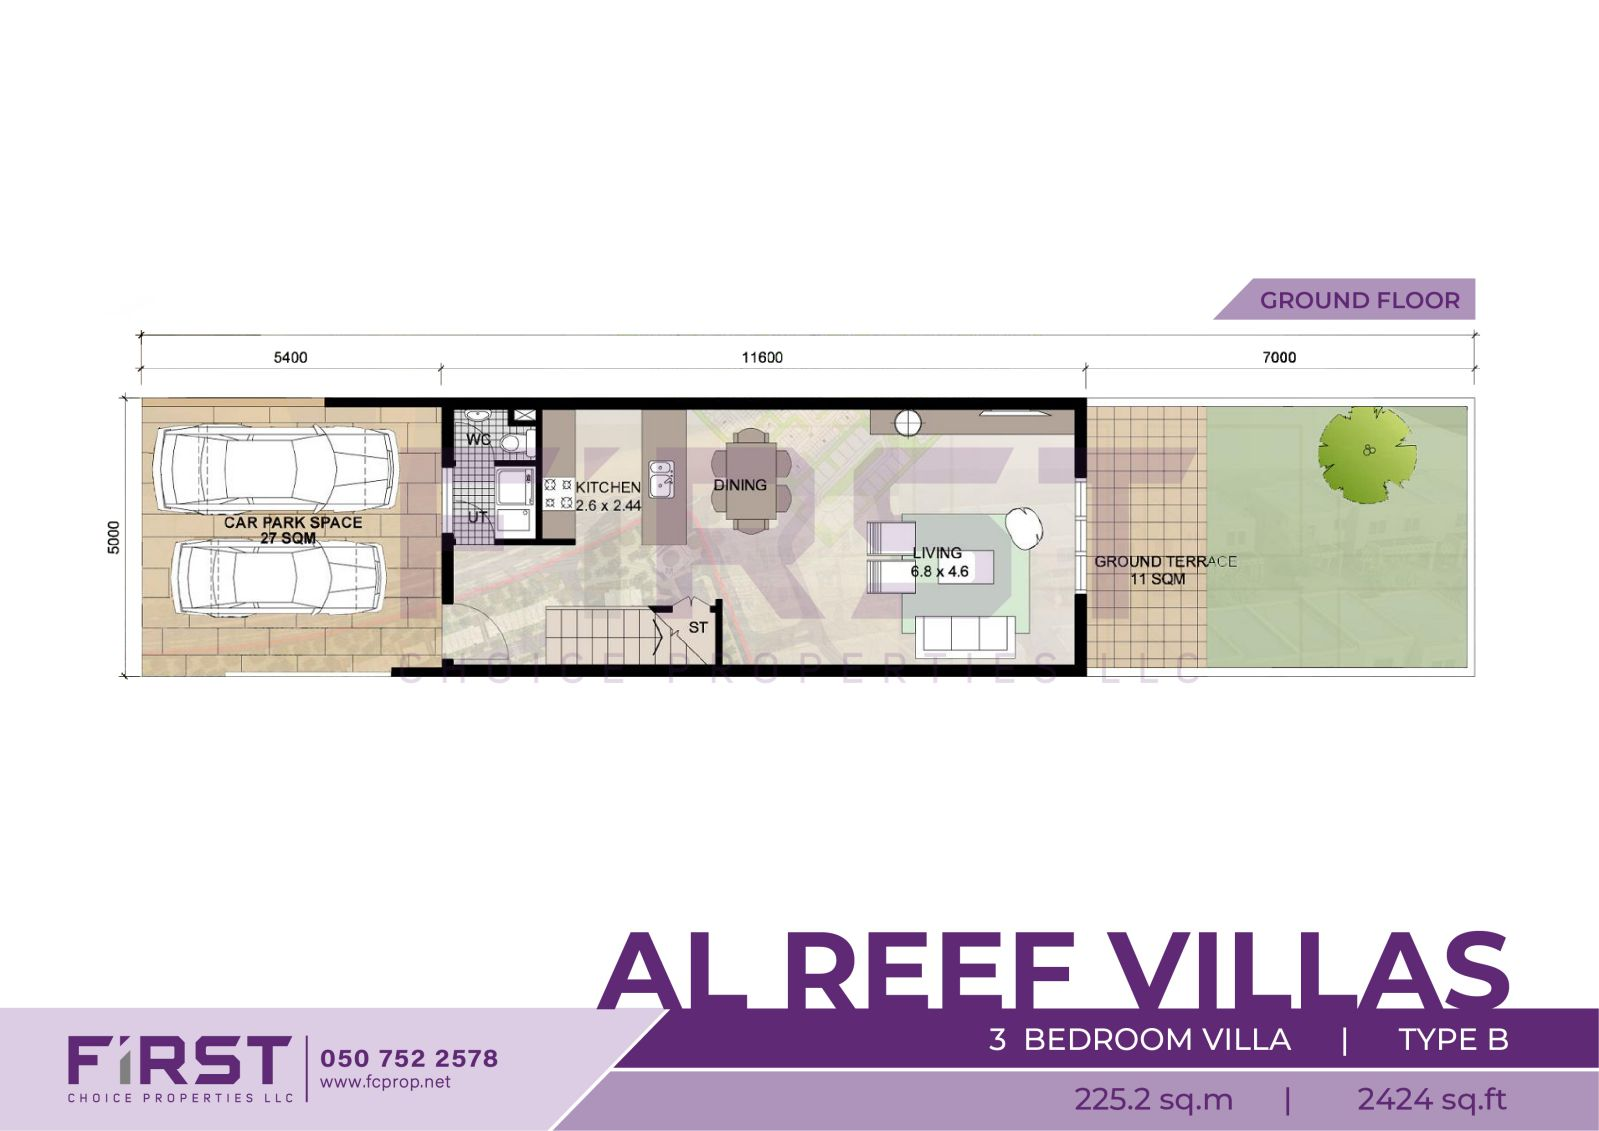 Al Reef Abu Dhabi Al Reef Villas 3 Bedroom Villa Type B 225.2 sq.m 2424 sq.ft 2.jpg